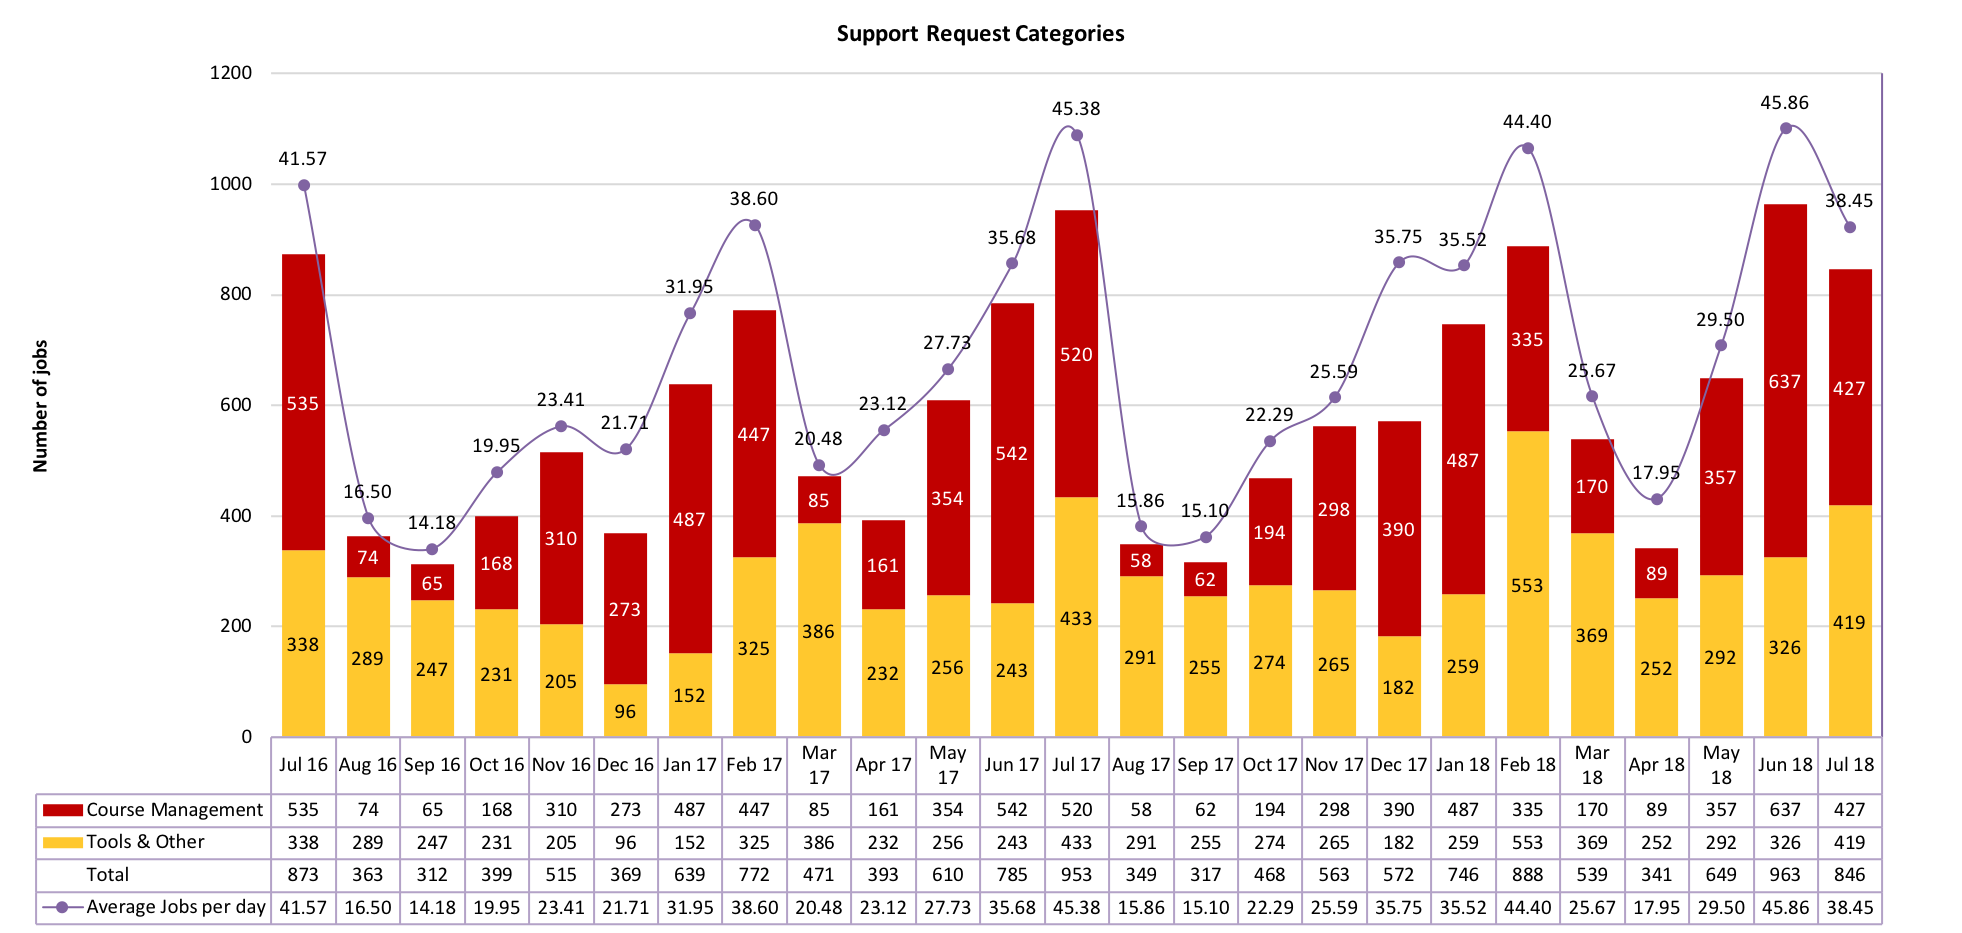 Chart of Support Request Categories from July 2016 to July 2018